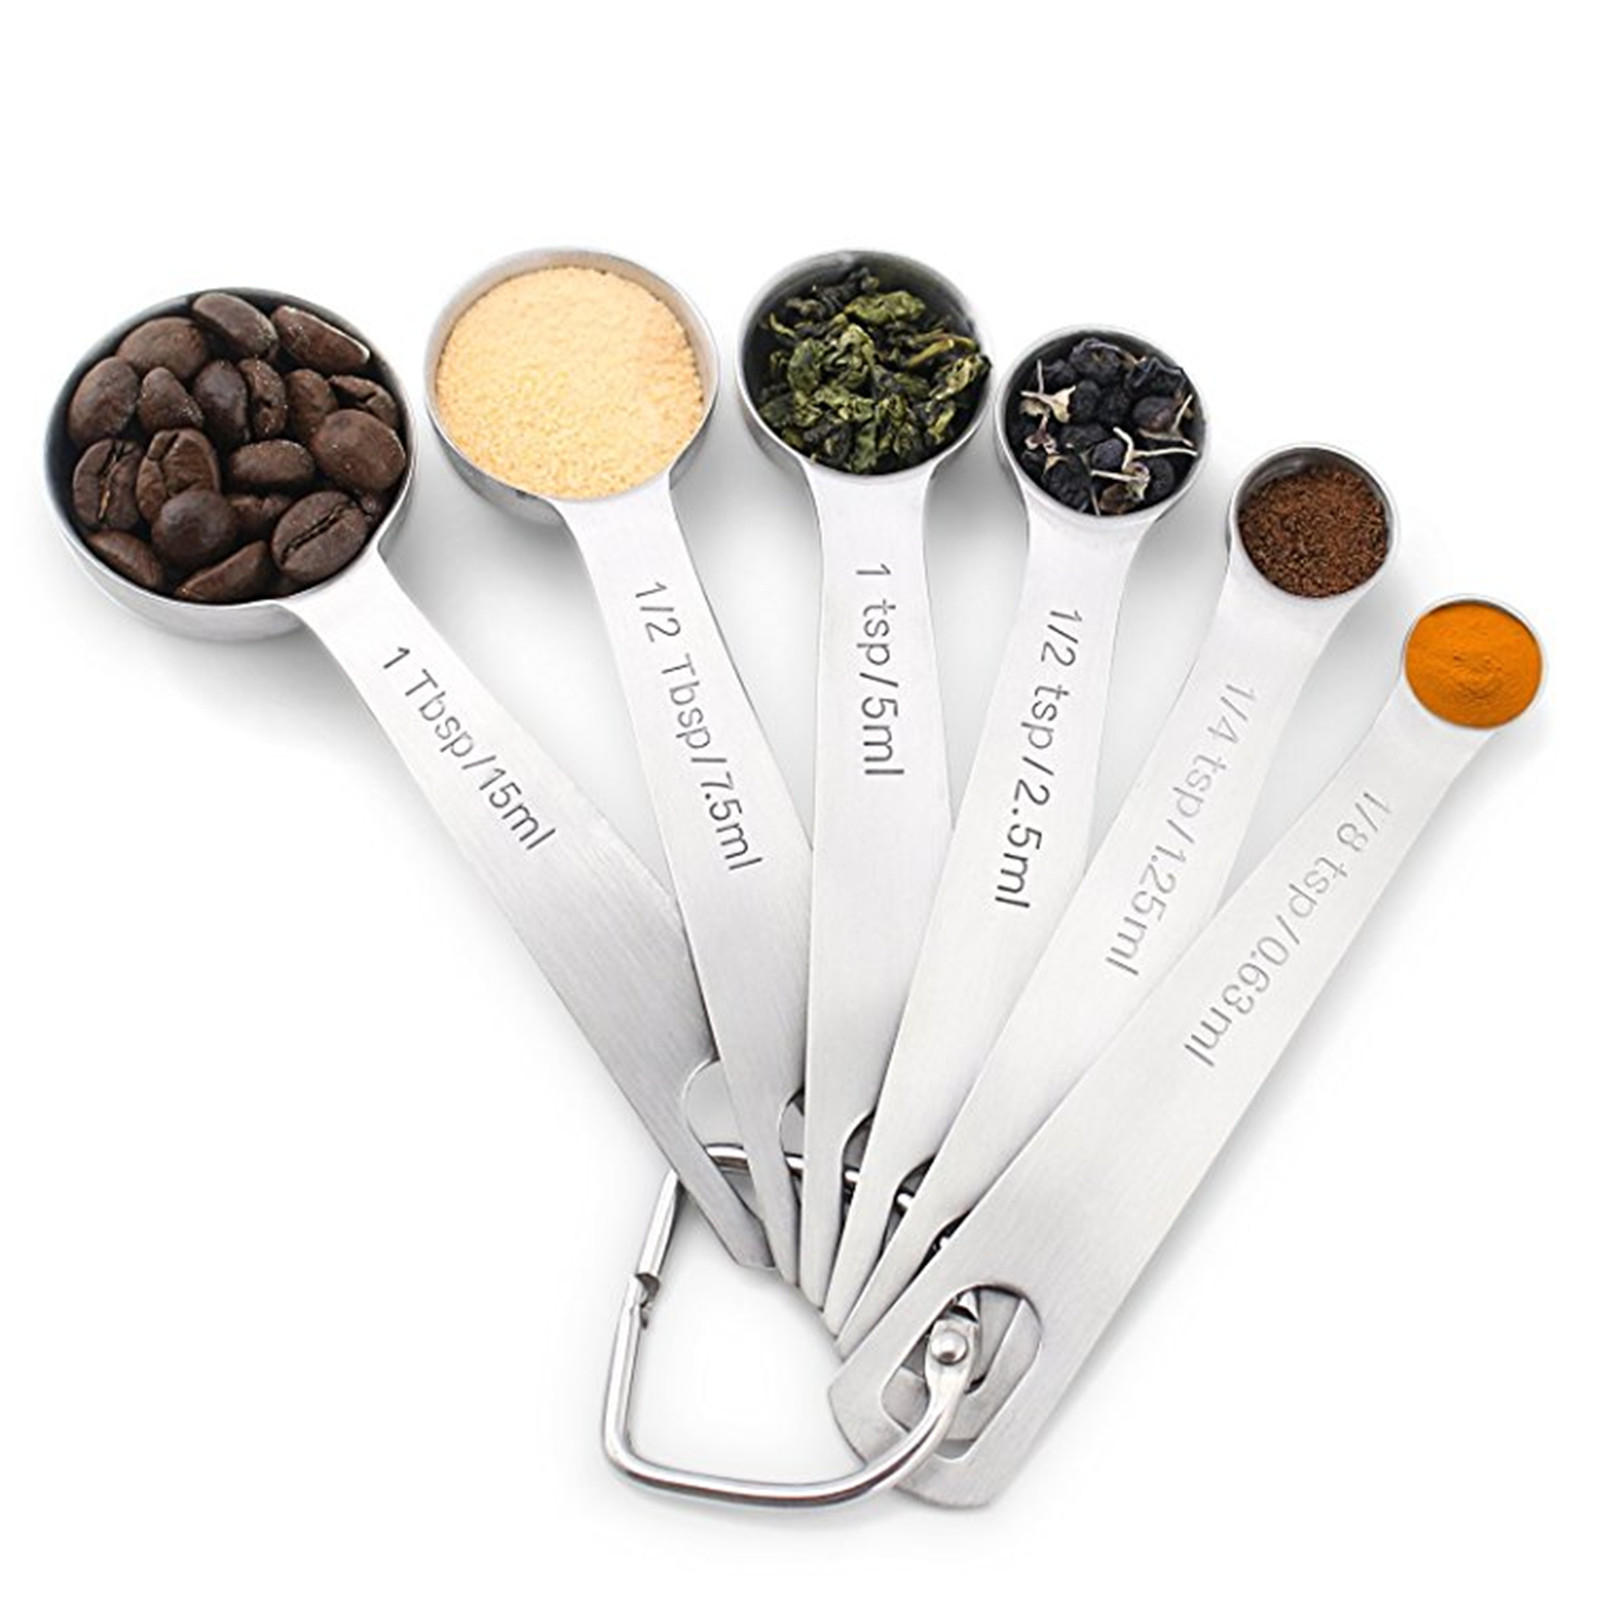 18 8 Stainless Steel Measuring Spoons Set Of 6 For